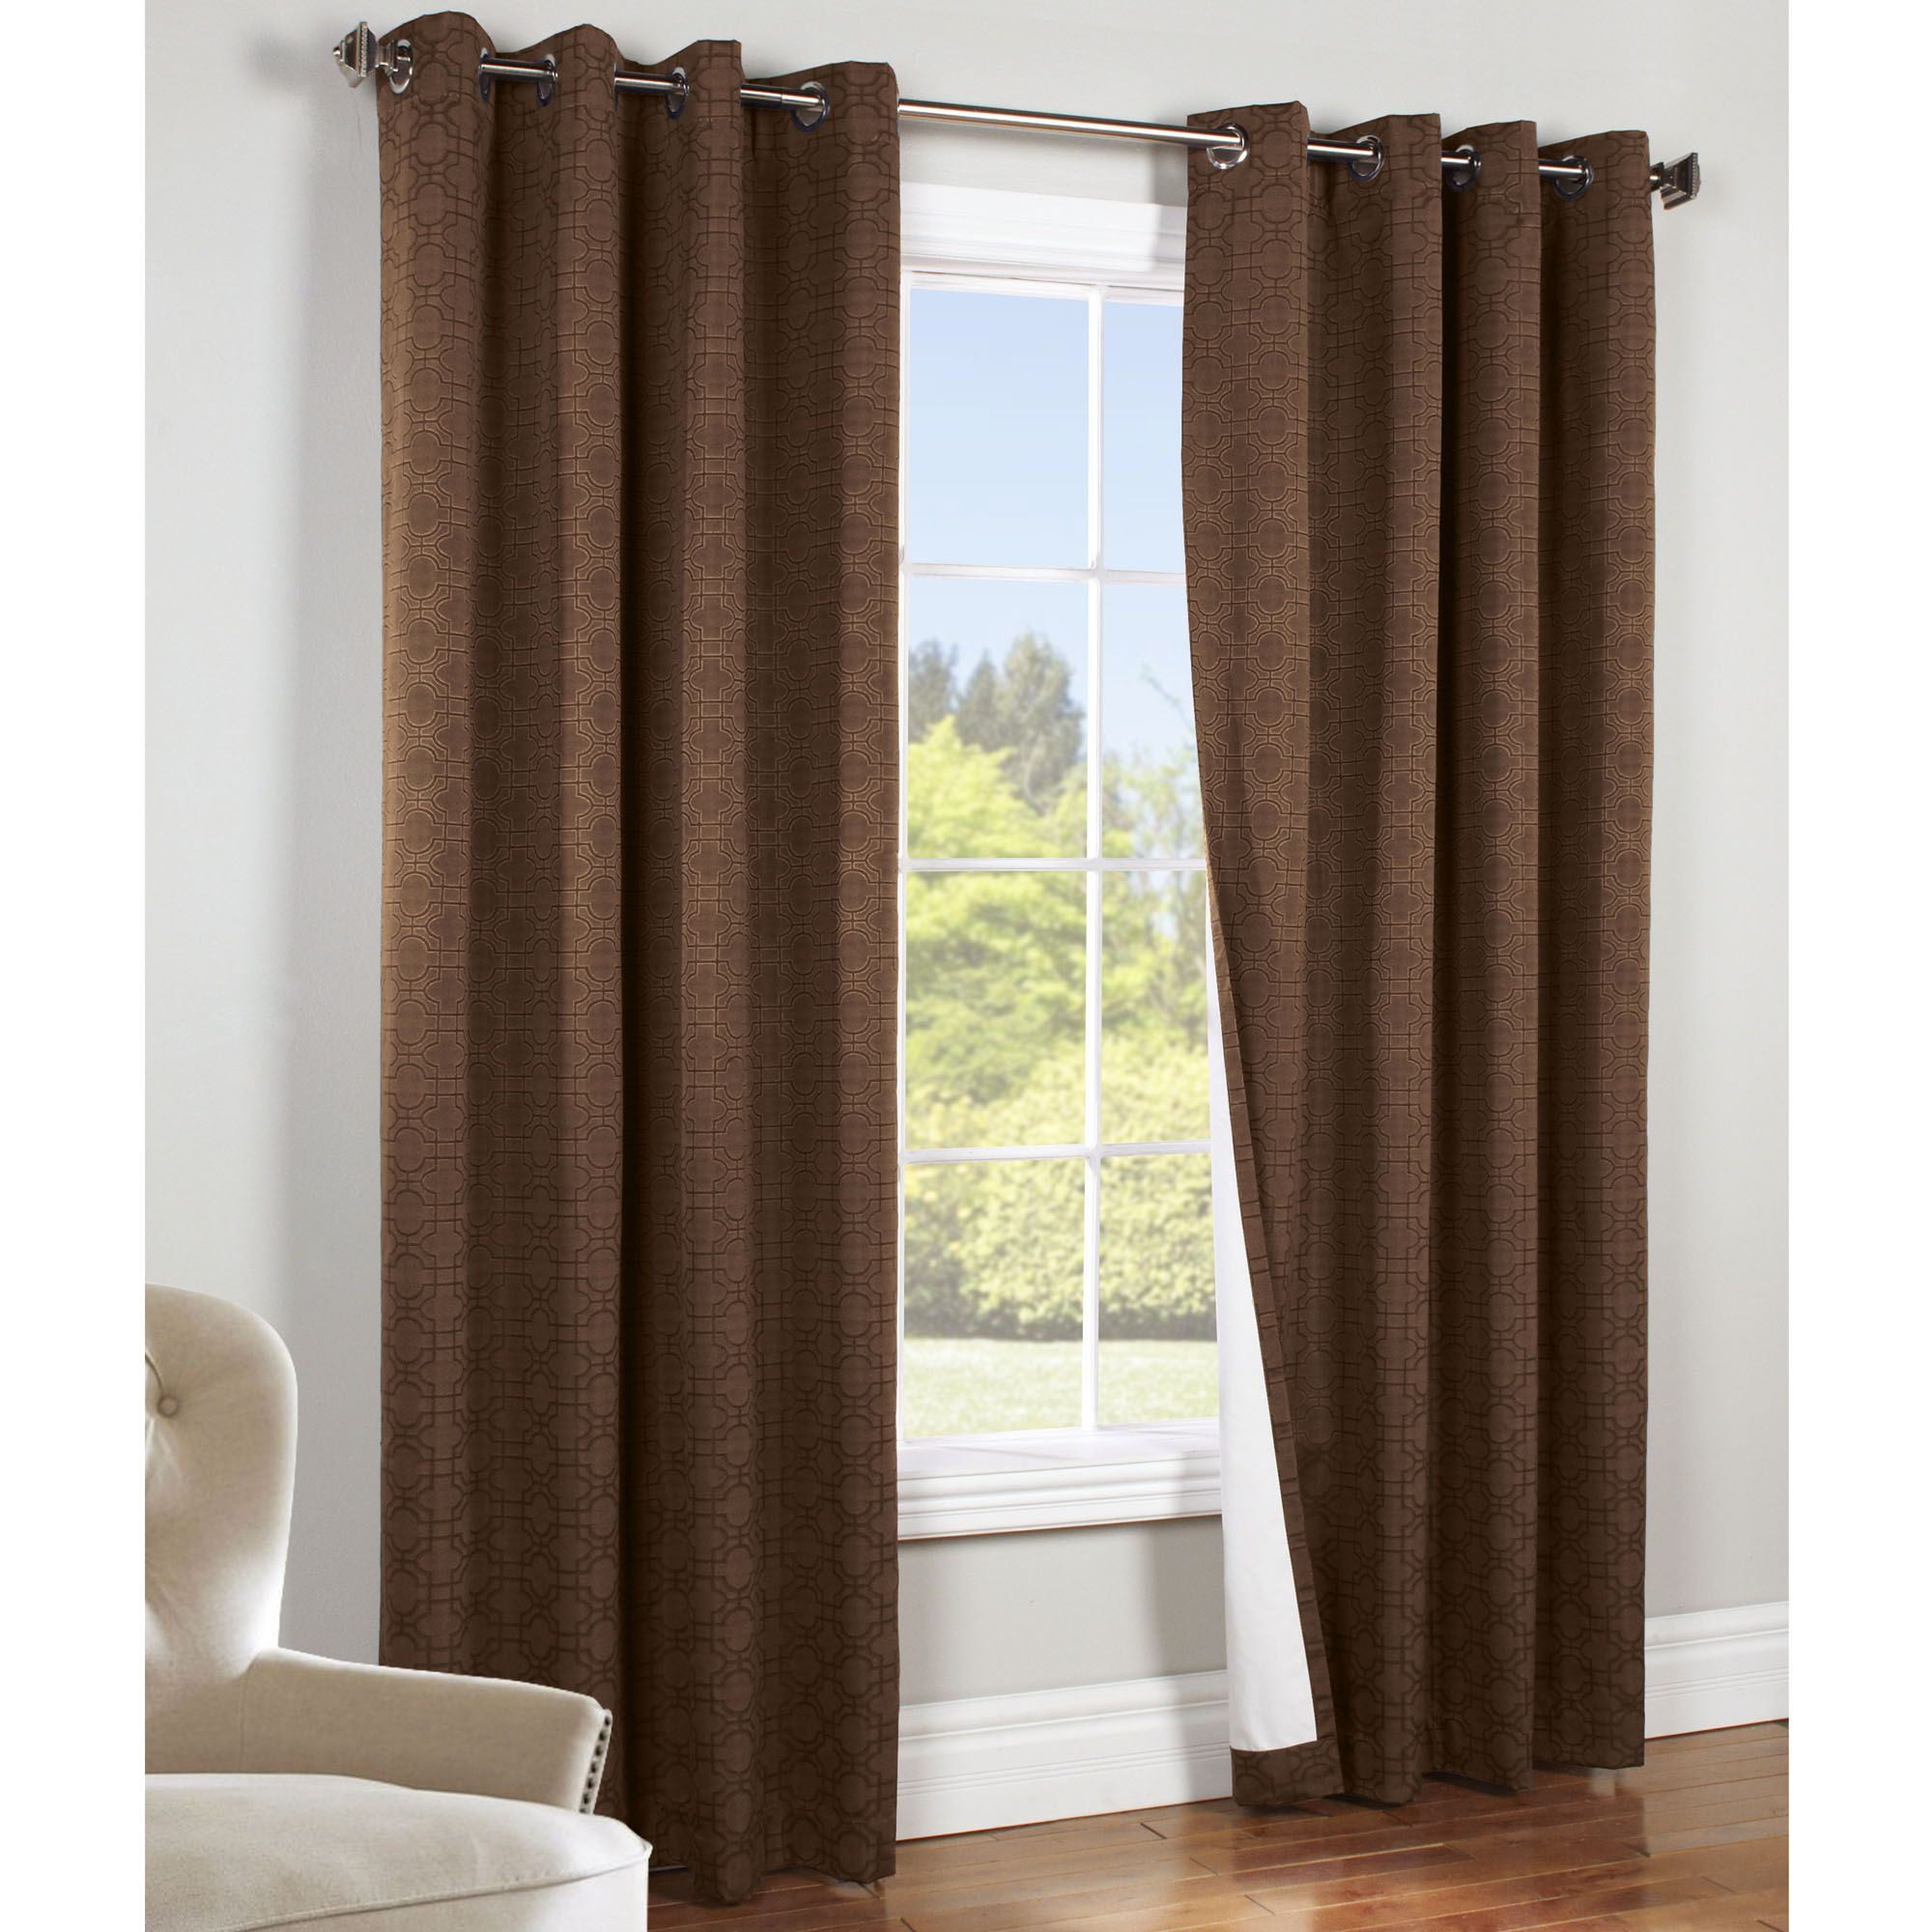 Irongate thermaplus total blackout grommet curtain panels for Curtains and drapes